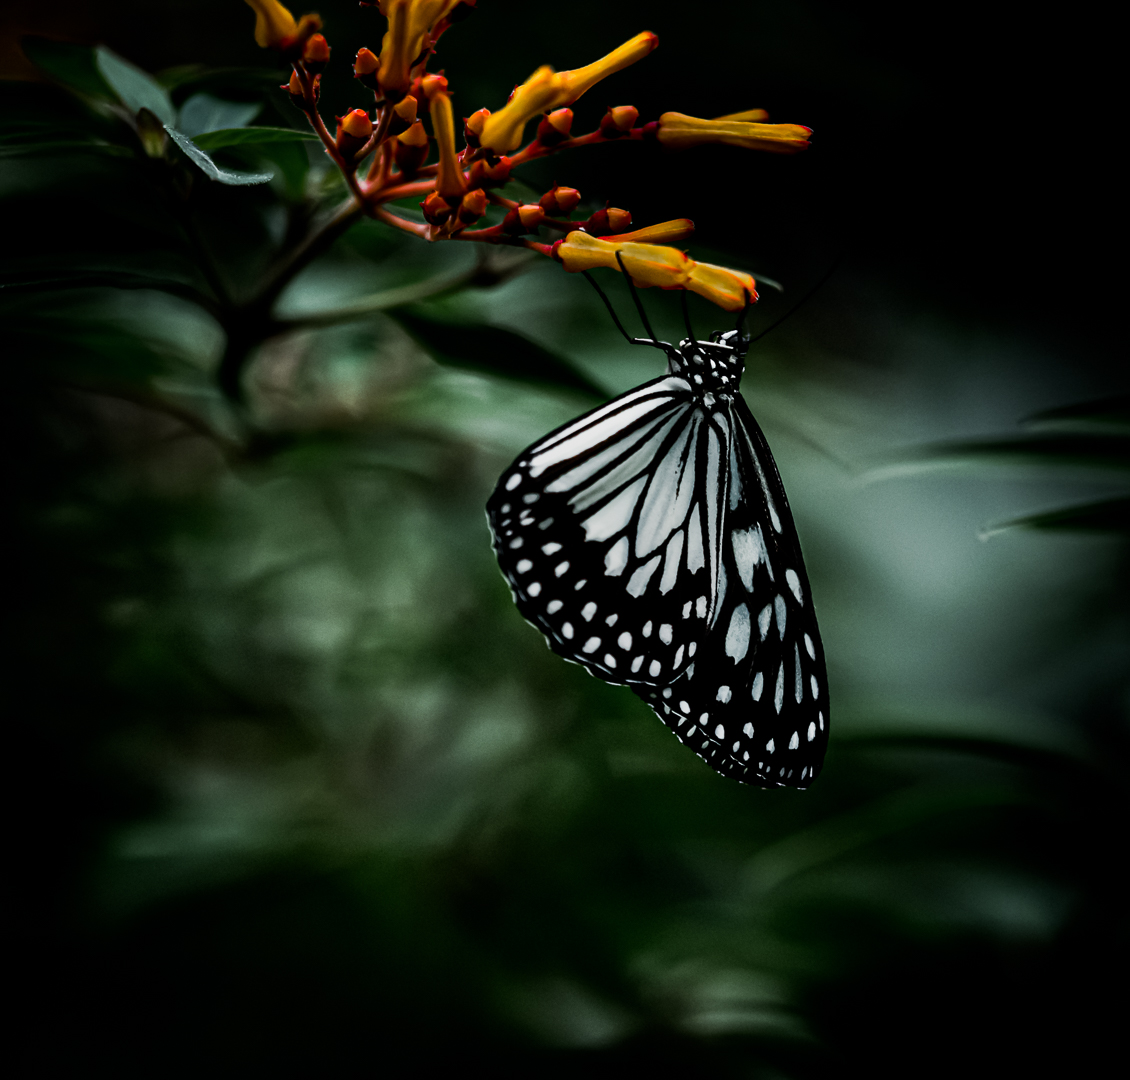 Dream sweet dreams, butterfly...